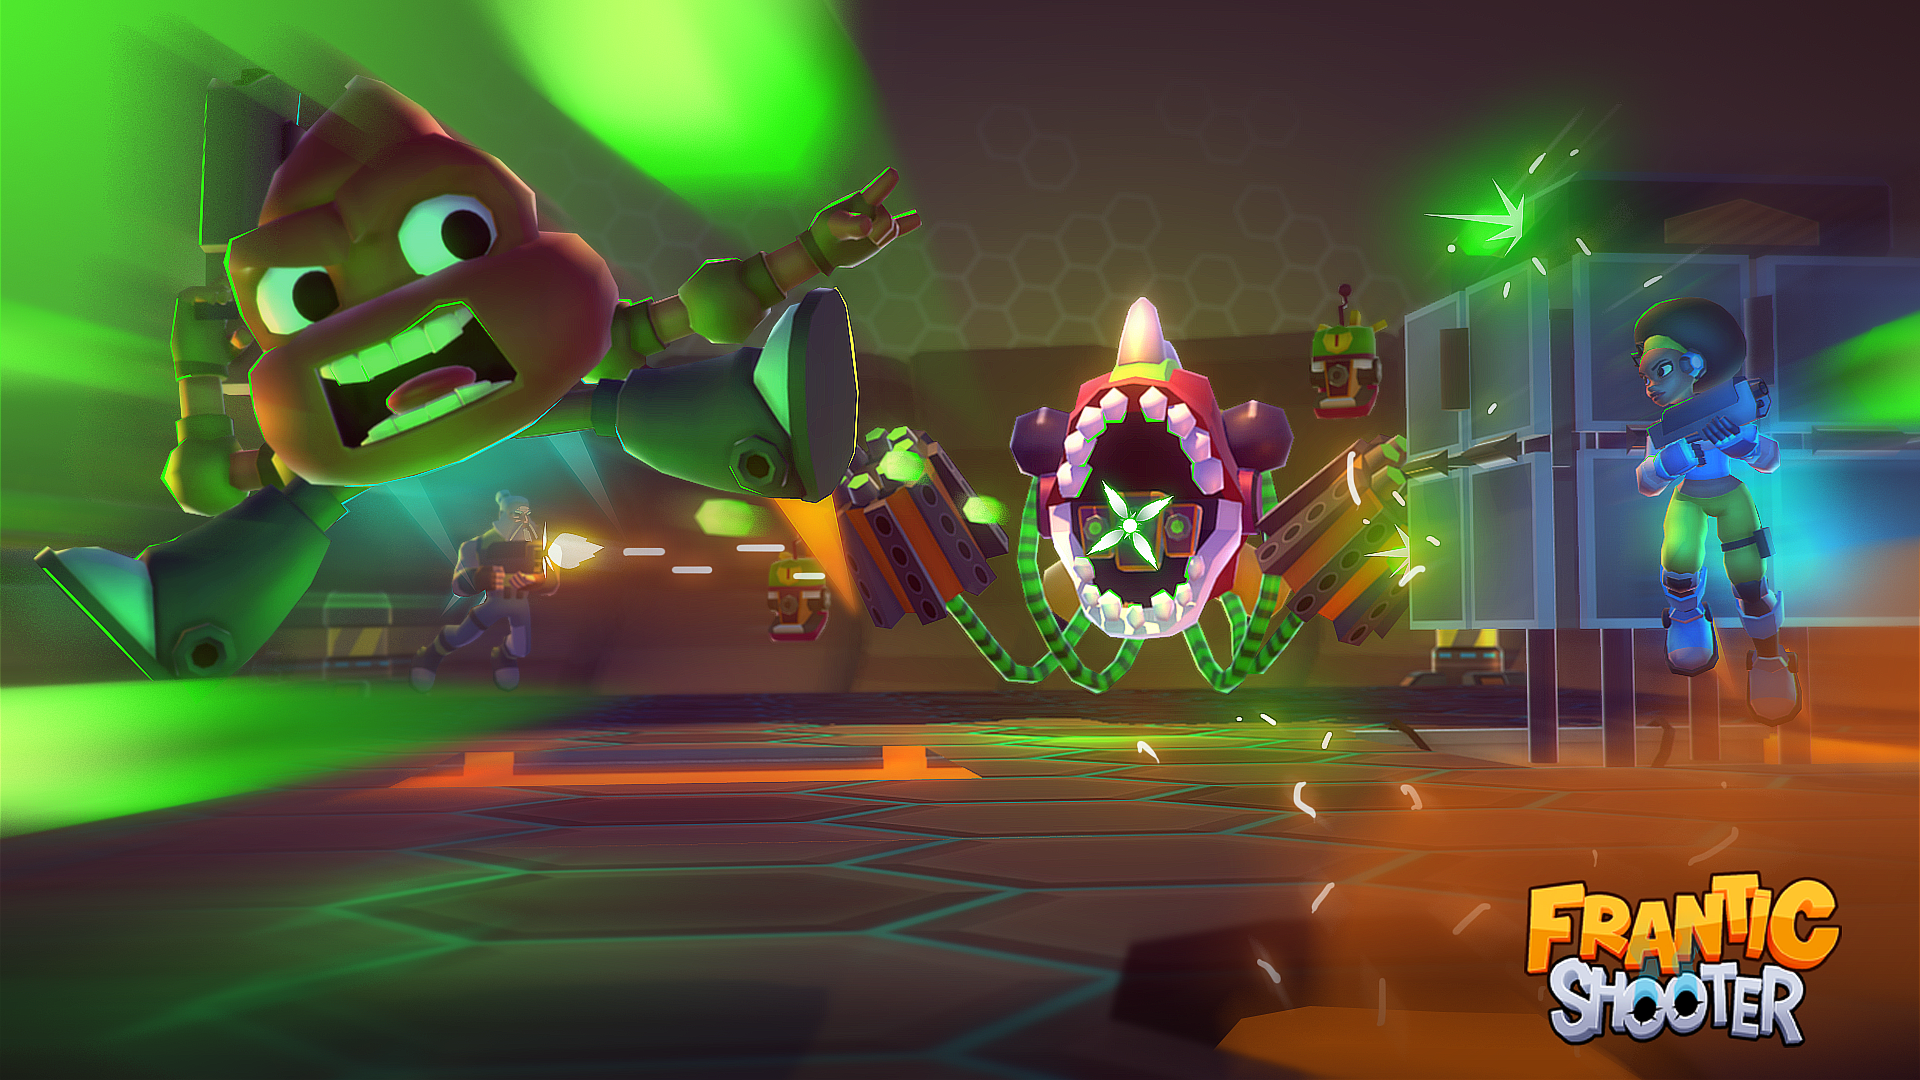 [Update] Frantic Shooter is exactly what its title suggests at an extremely fast pace, out now